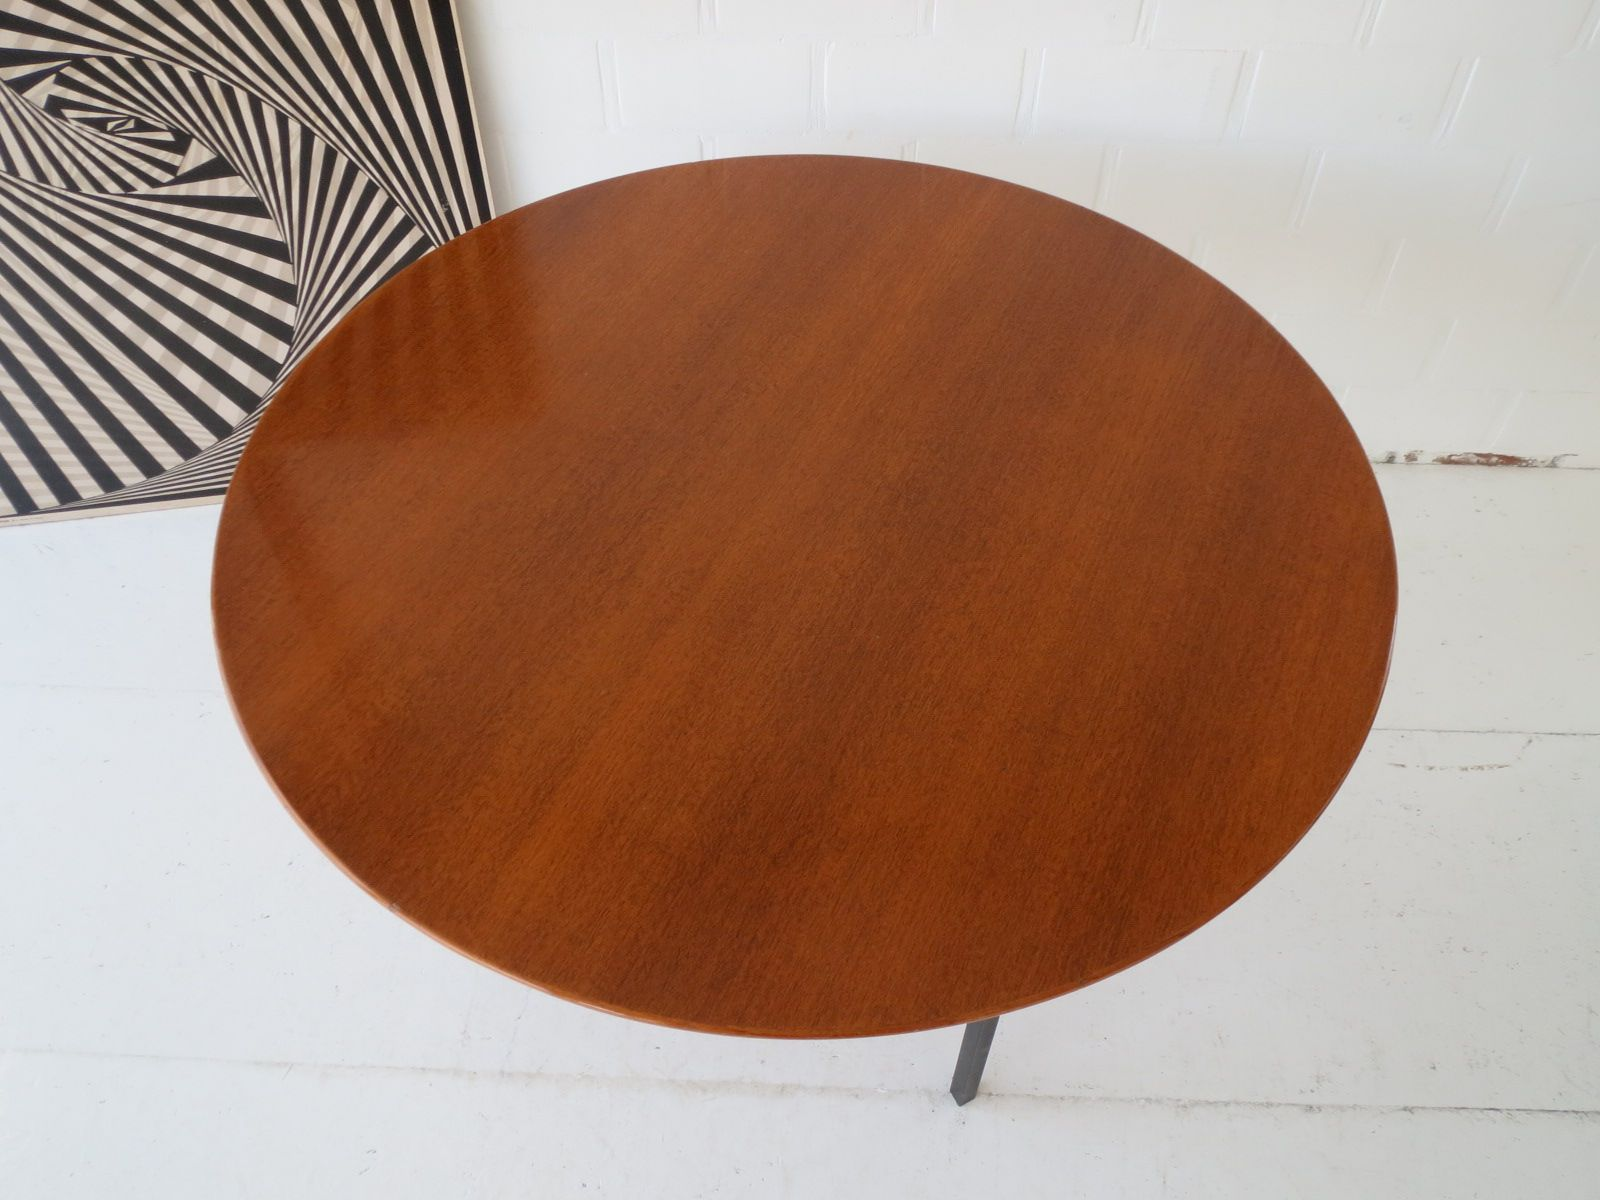 Vintage Belgian Teak Dining Table by Florence Knoll for  : vintage belgian teak dining table by florence knoll 3 from www.pamono.com size 1600 x 1200 jpeg 397kB